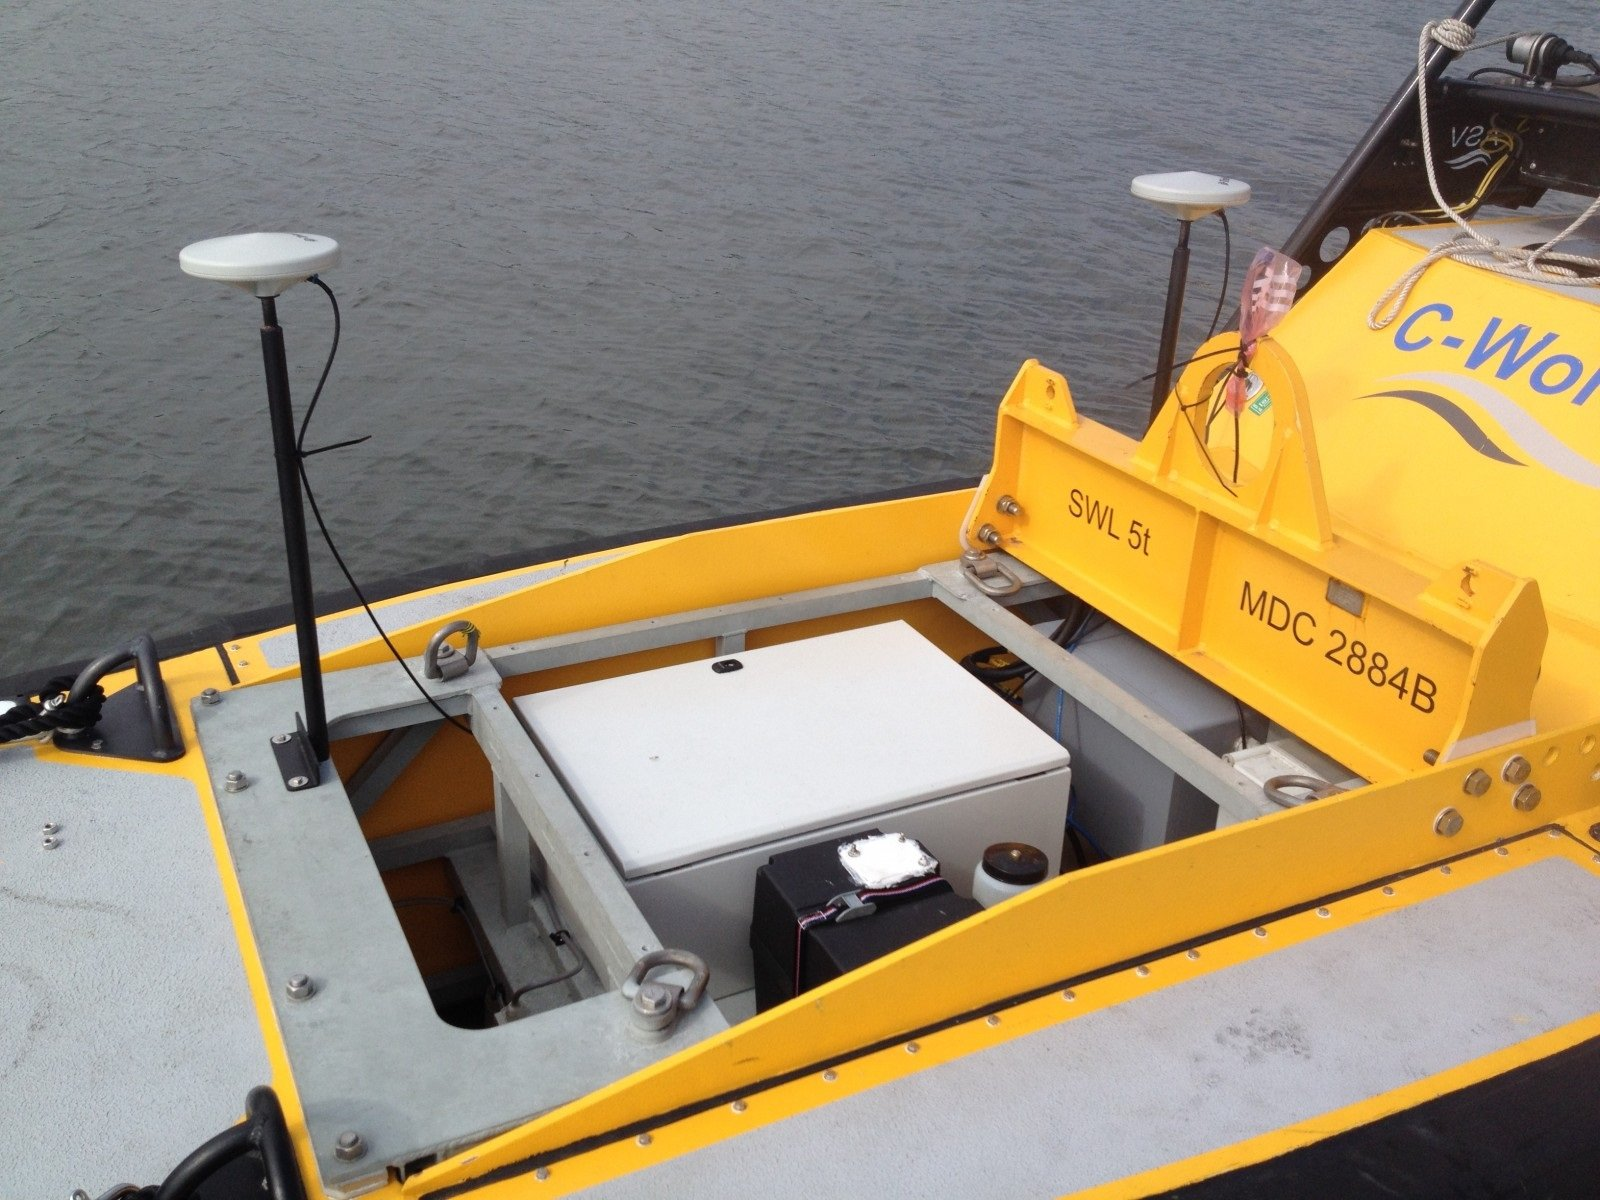 Coastal Hydrographic Survey with Unmanned Surface Vehicles (USVs)